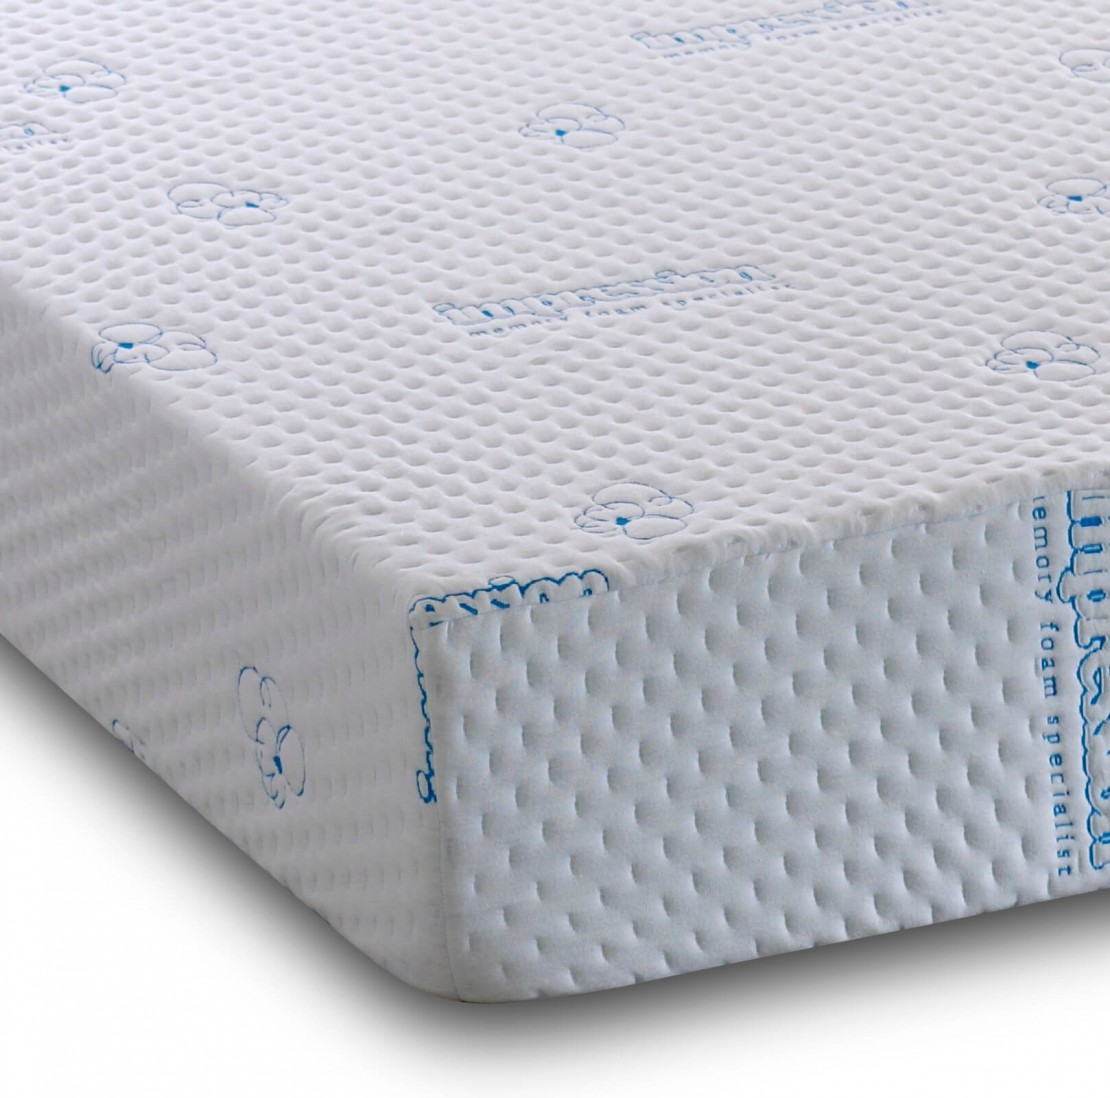 /_images/product-photos/visco-therapy-visco-2000-hd-memory-foam-firm-mattress-a.jpg